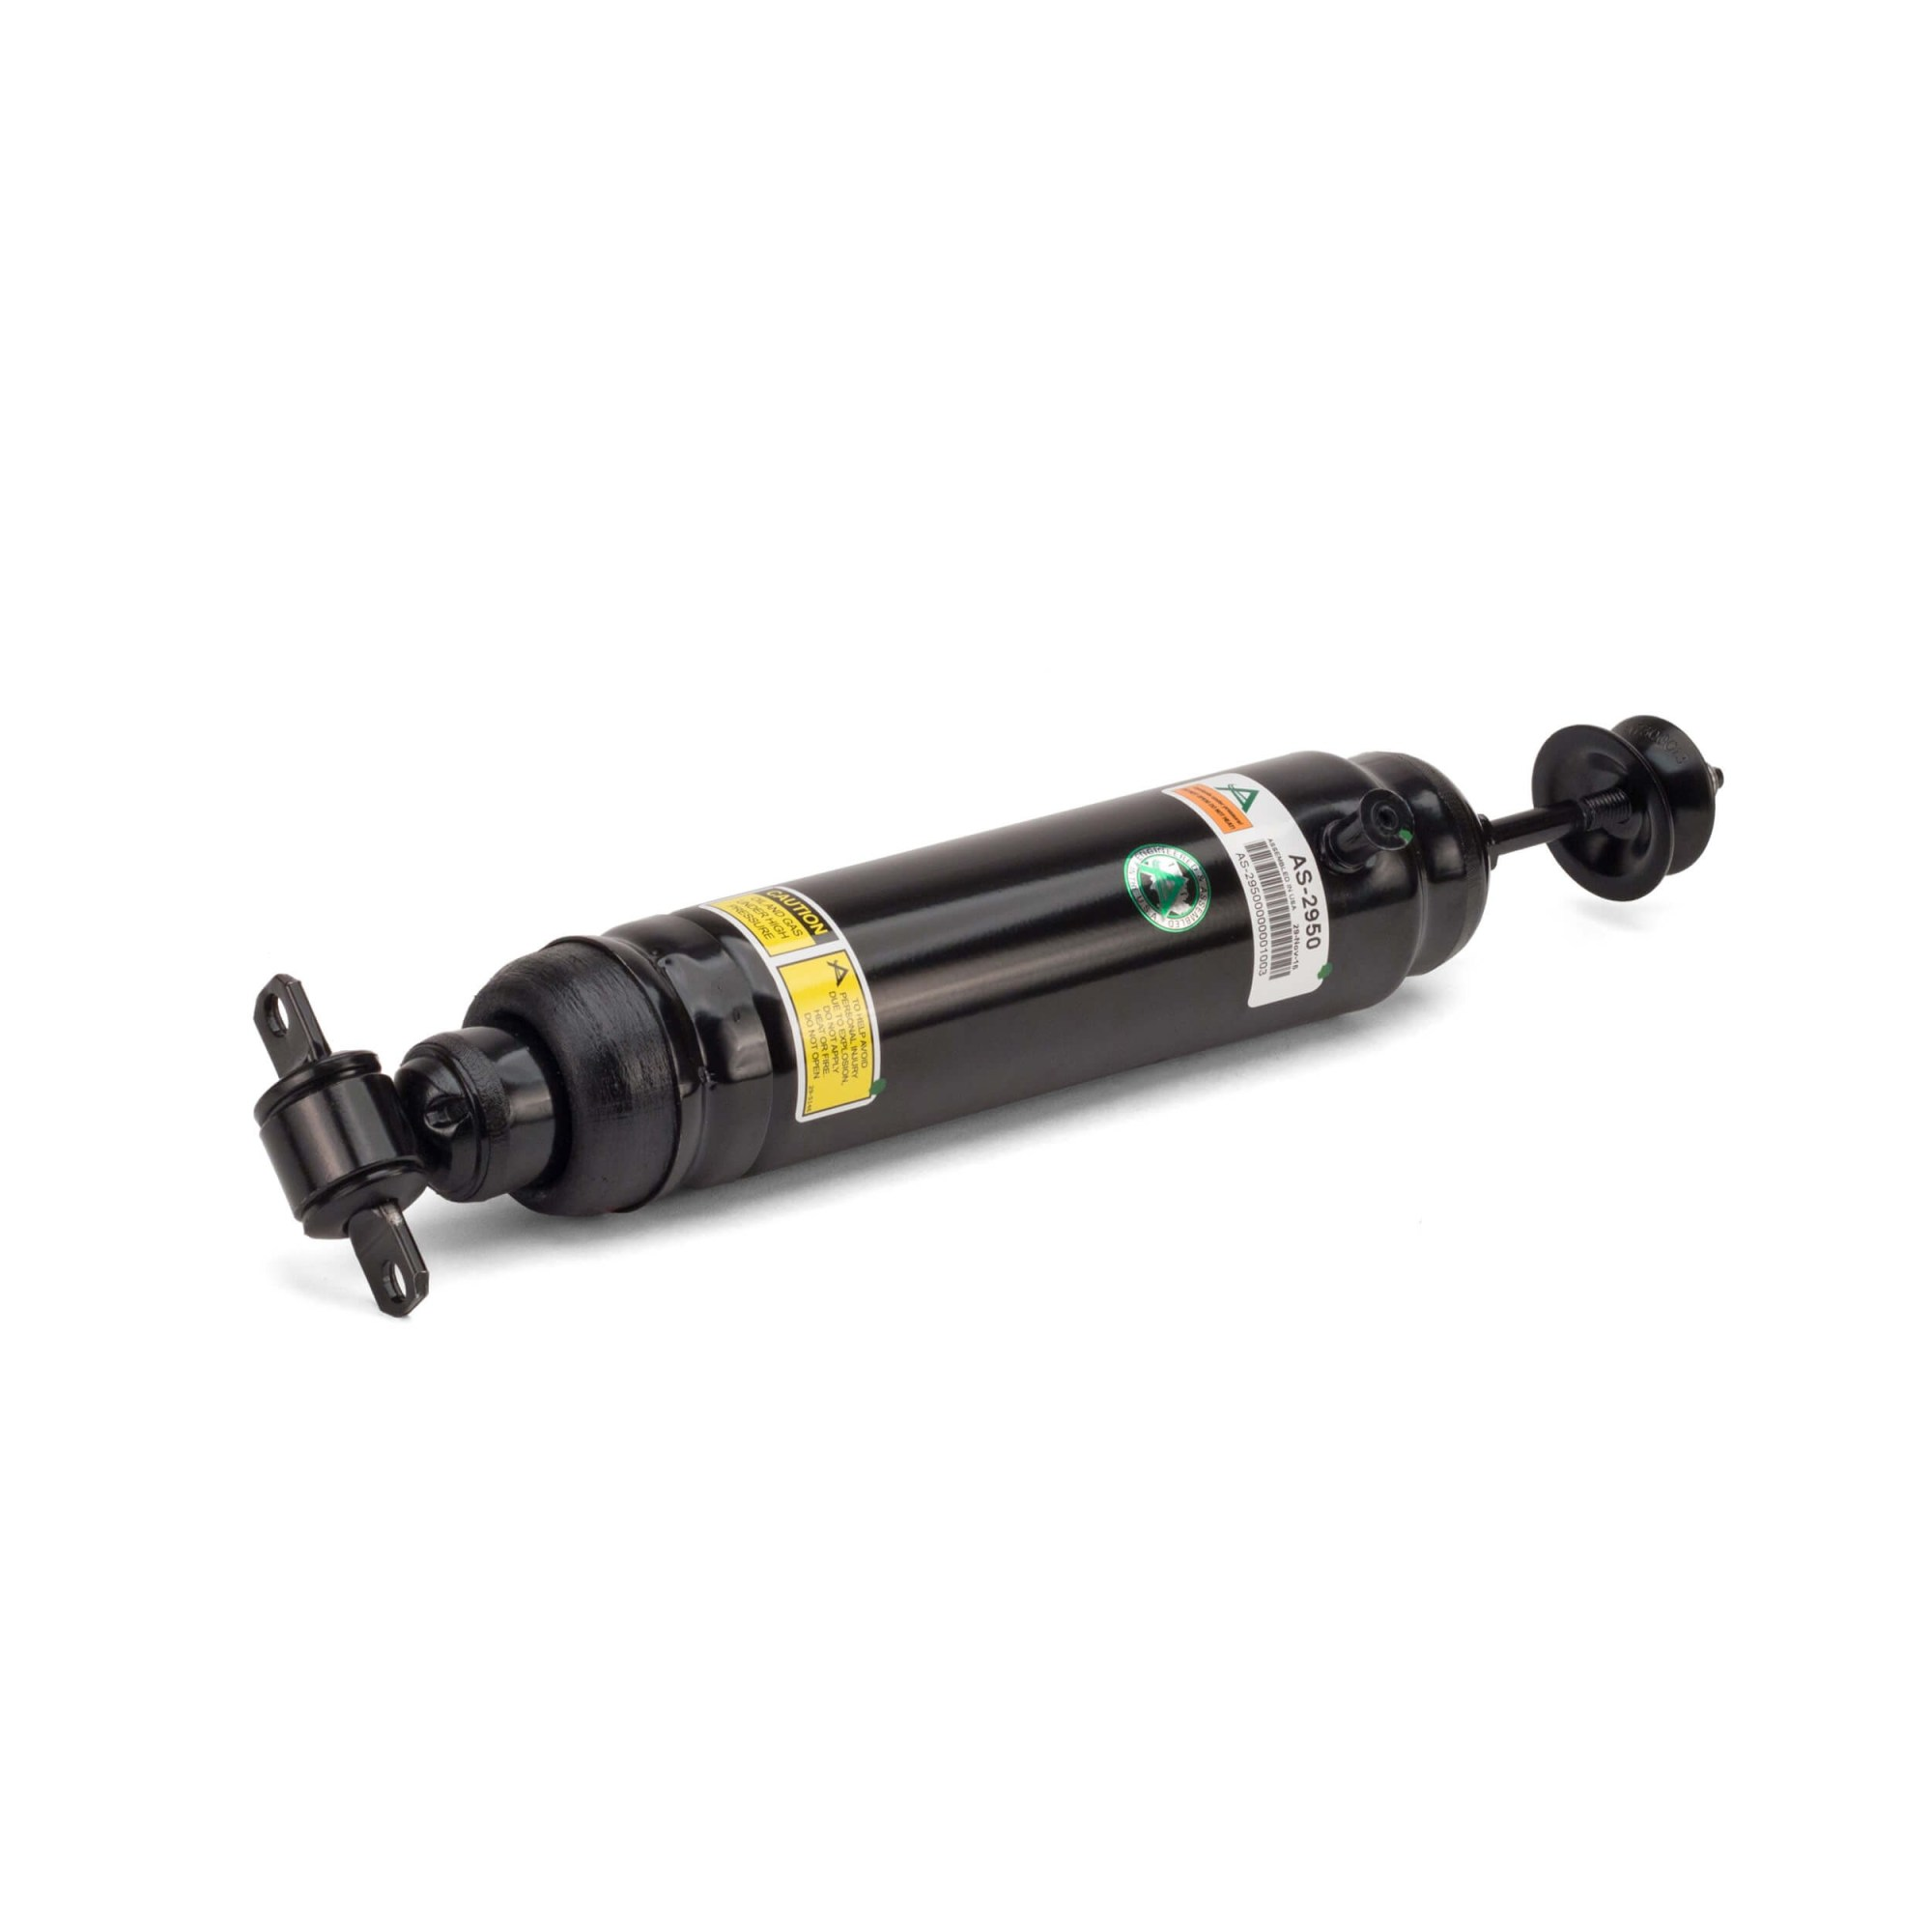 hight resolution of arnott new rear air shock 06 11 cadillac dts buick lucerne w sport suspension f55 magneride left or right